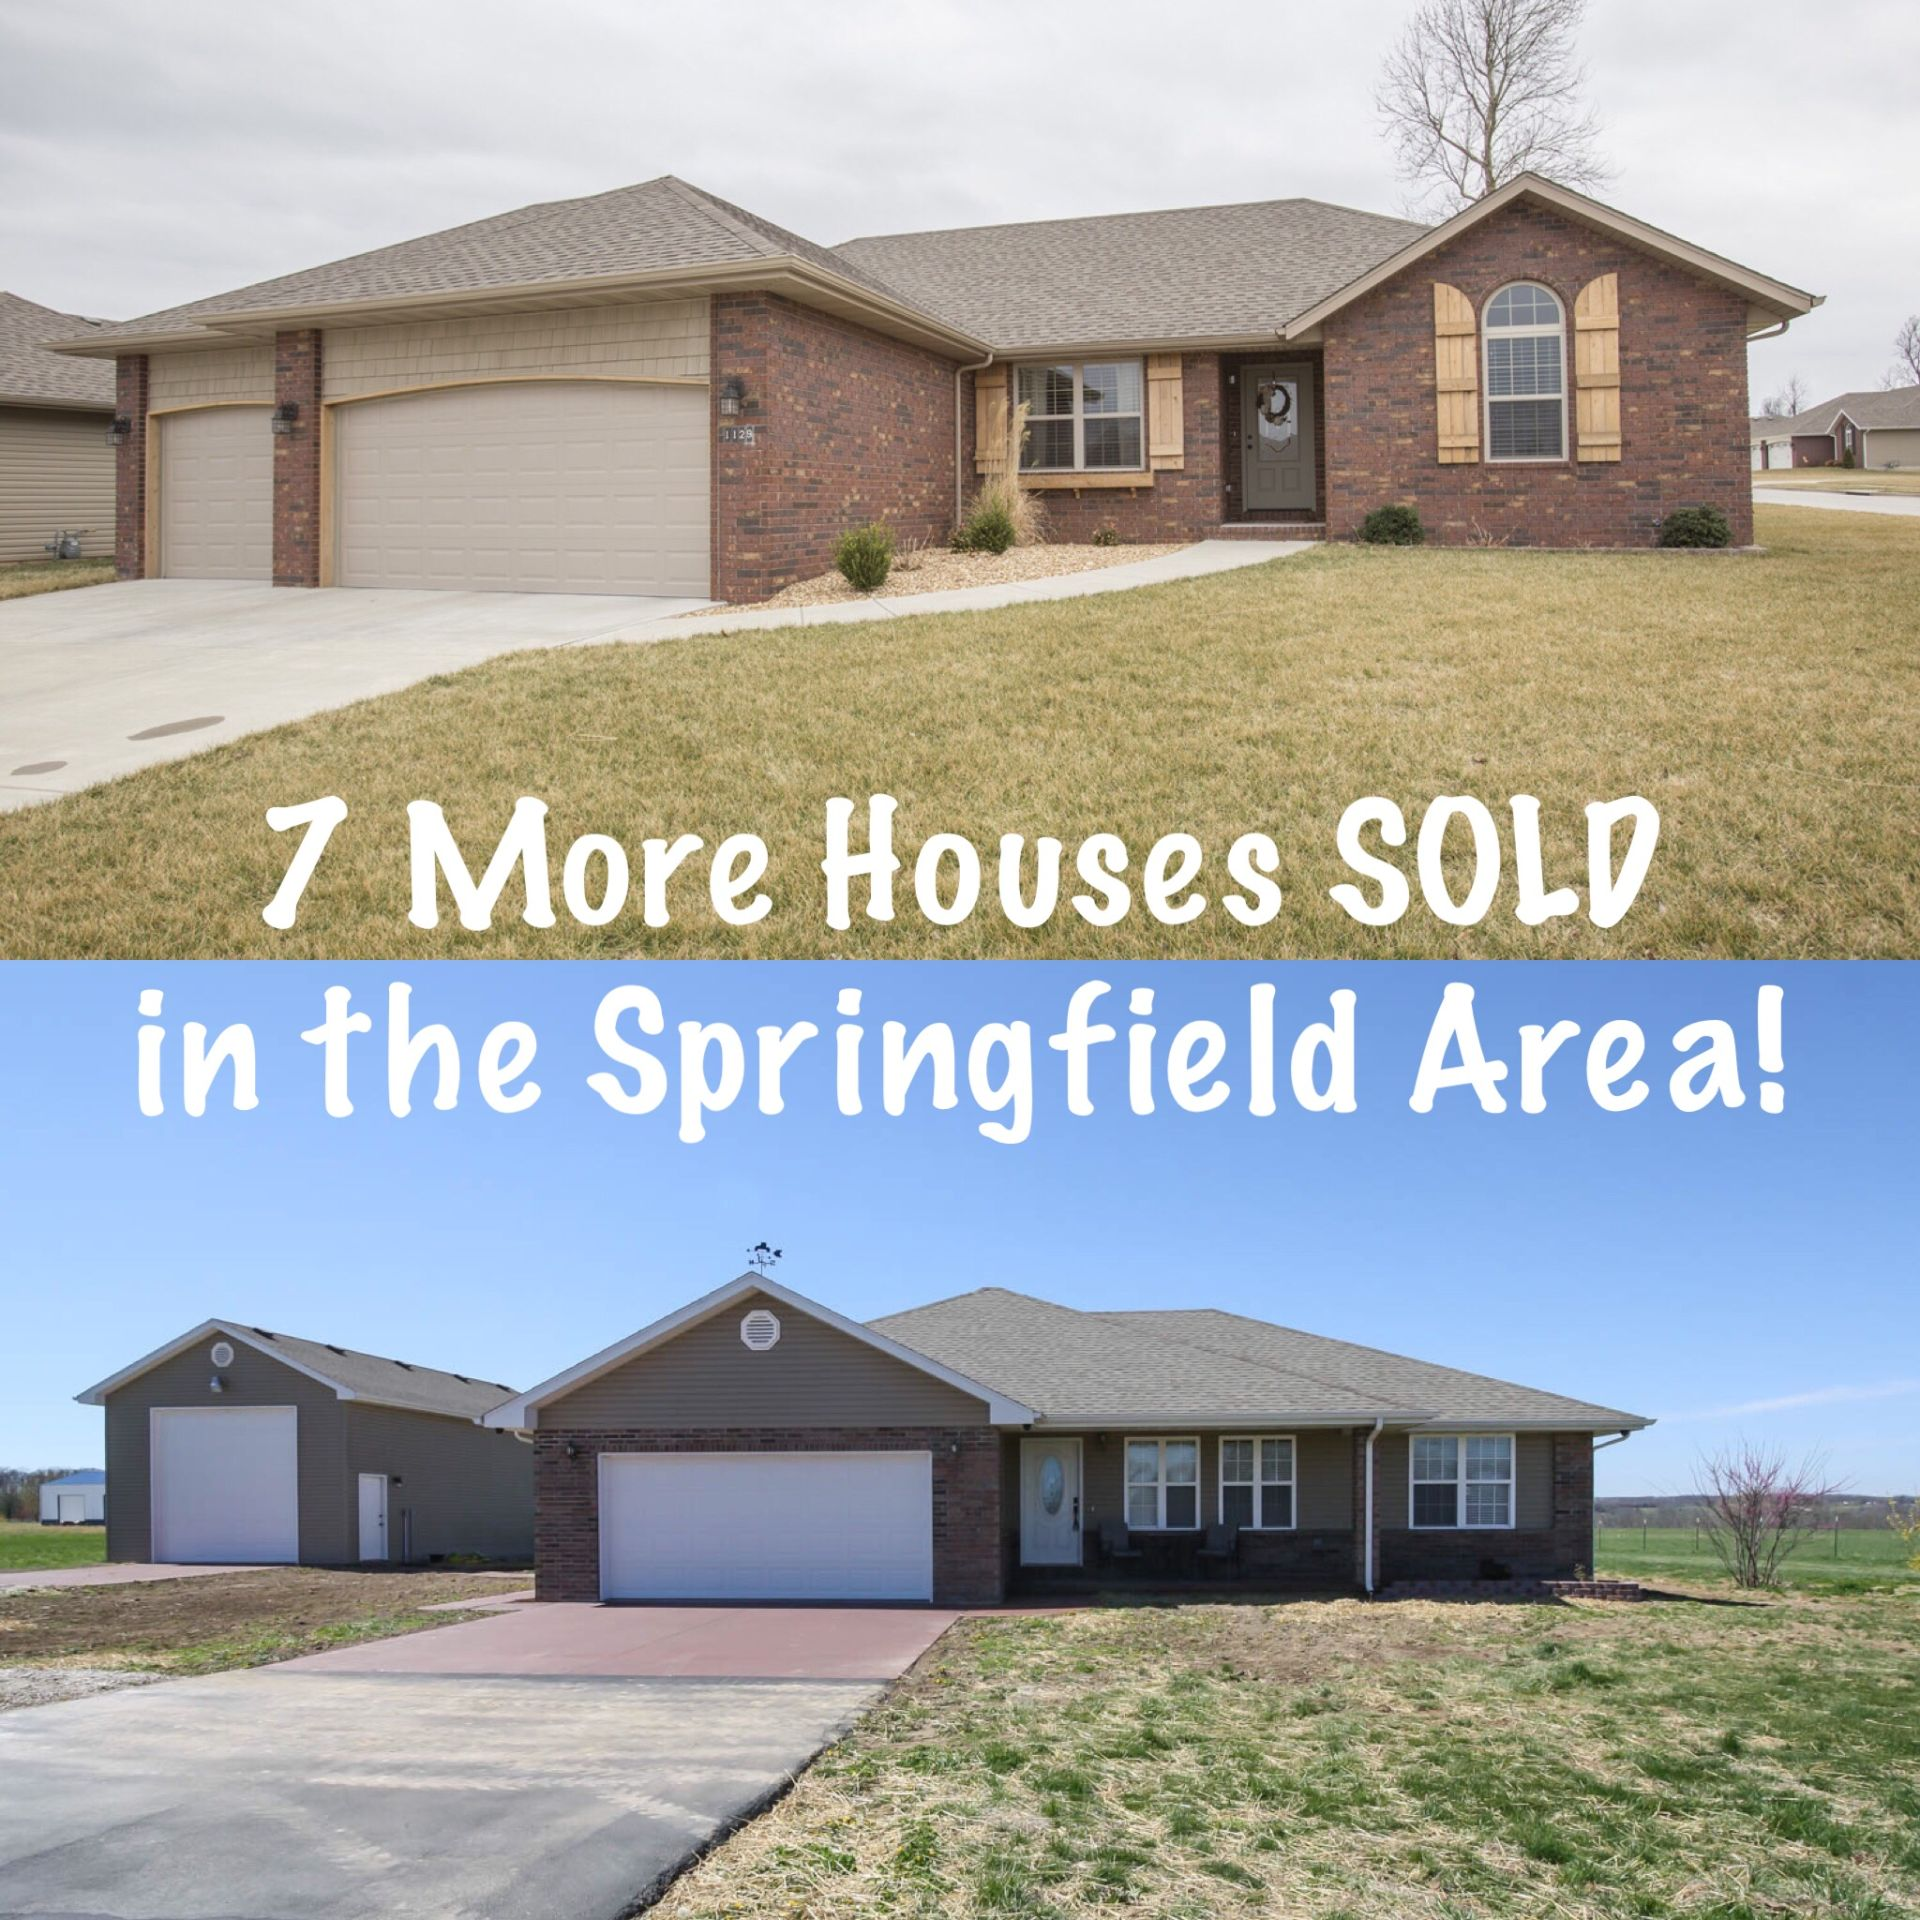 We just SOLD 7 Houses in Springfield, Nixa, Republic and Bolivar!